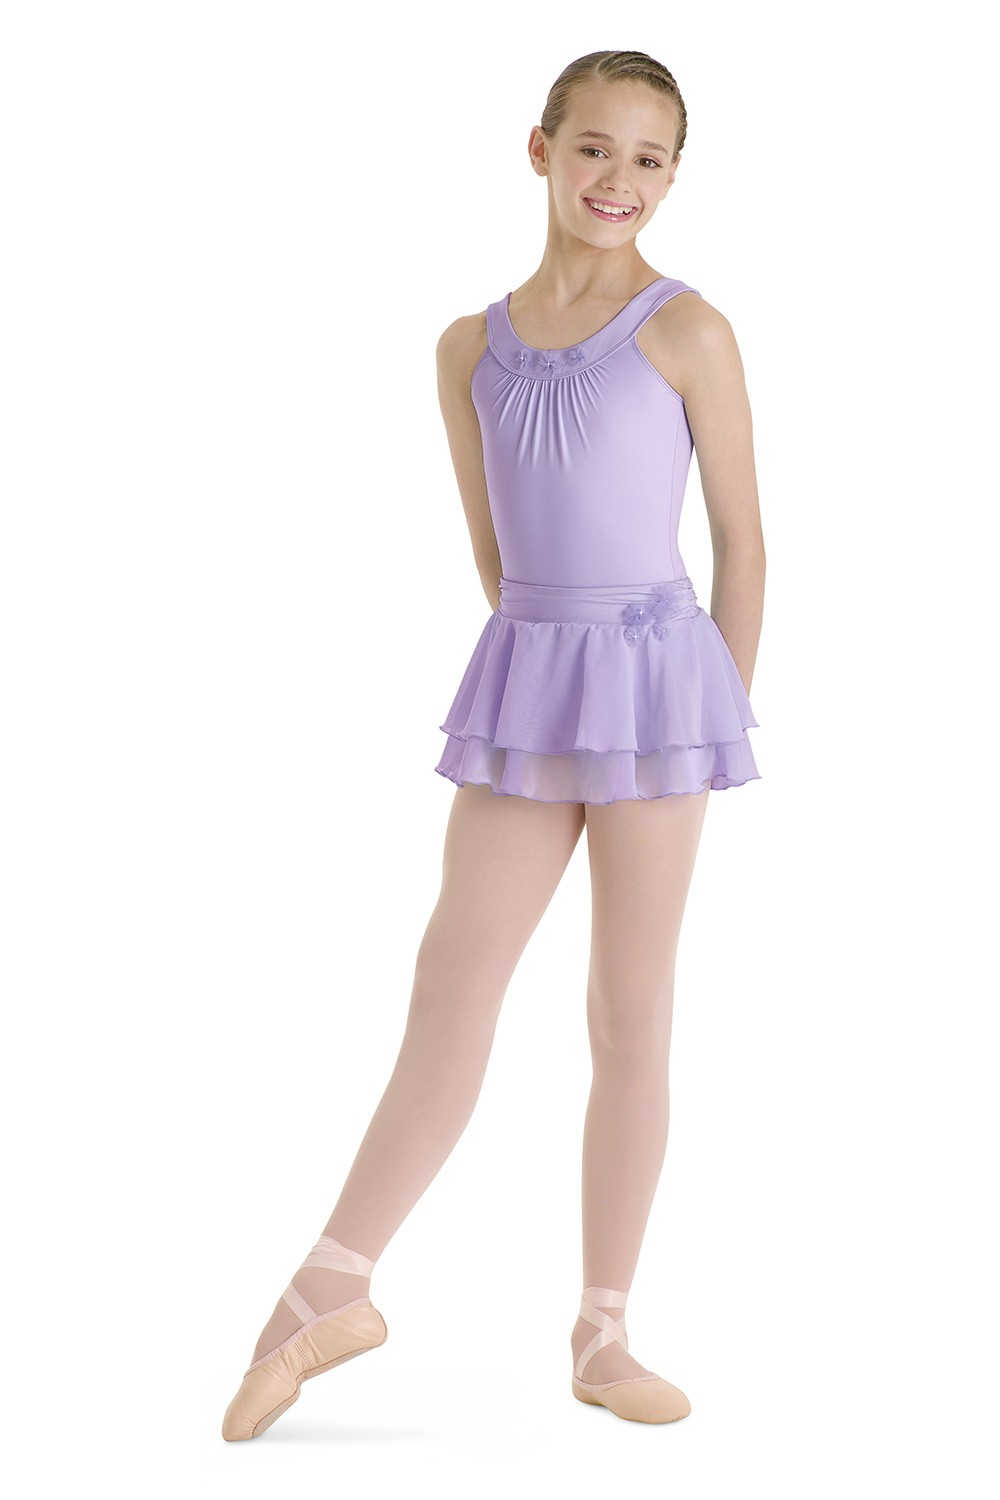 Girls Leotard With Yoke Children's Dance Leotards